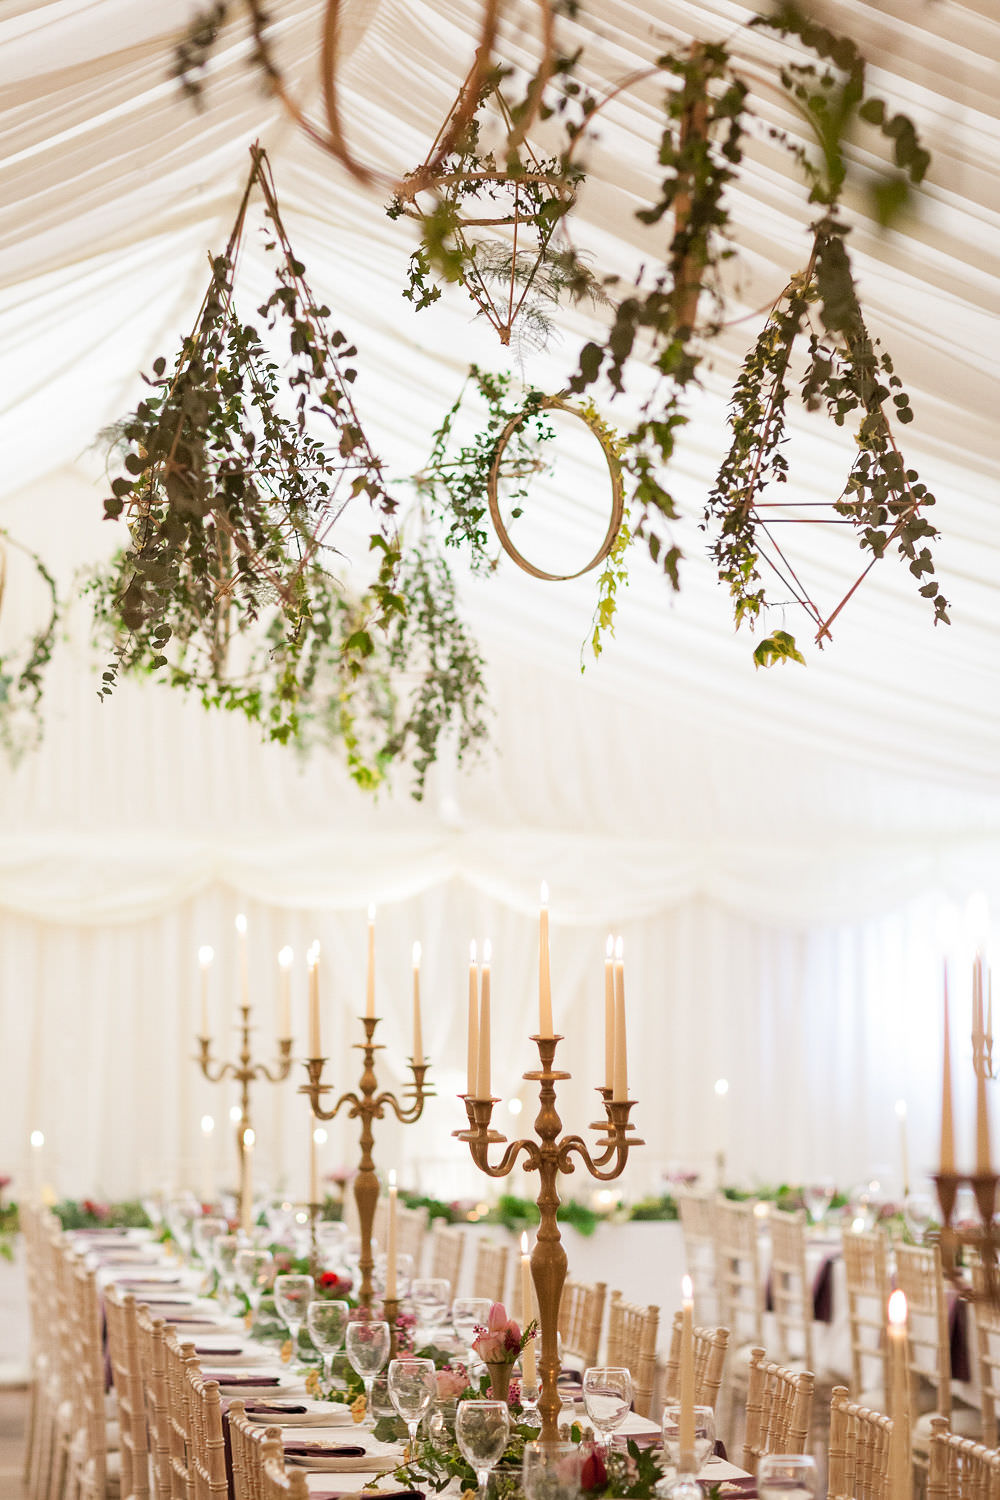 Highcliffe Castle Wedding Marquee Hoops Hanging Suspended Greenery Foliage Decor Geometric Brass Candlesticks Candelabras Bowtie and Belle Photography